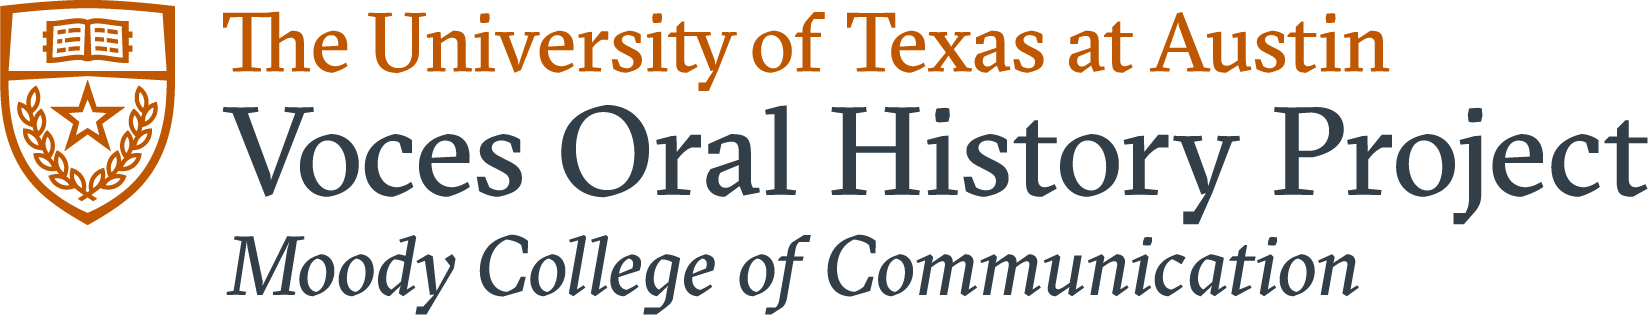 VOCES Oral History Center logo